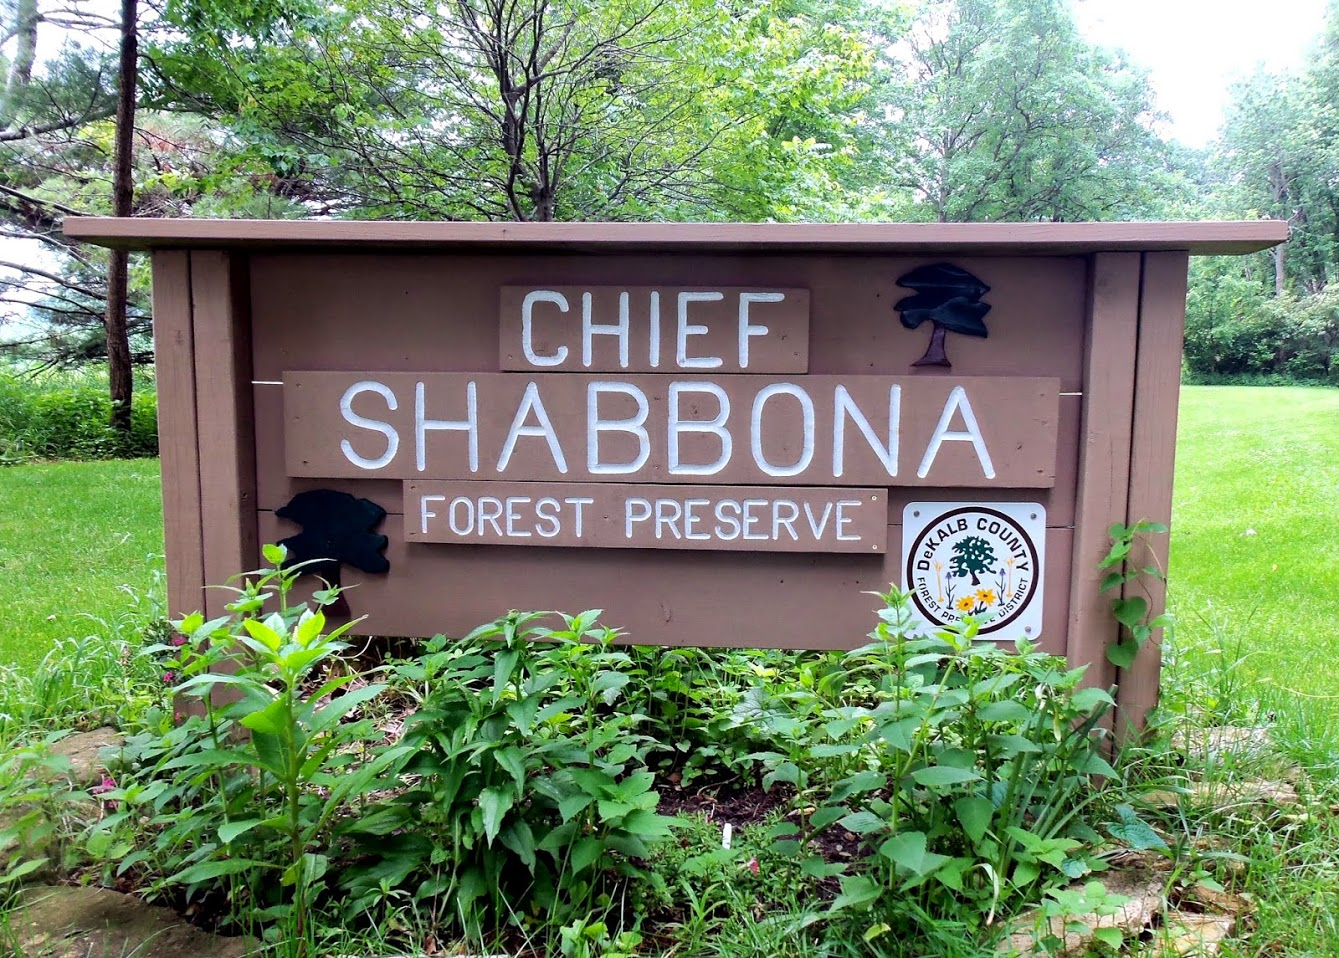 chief shabbona forest preserve sign.JPG